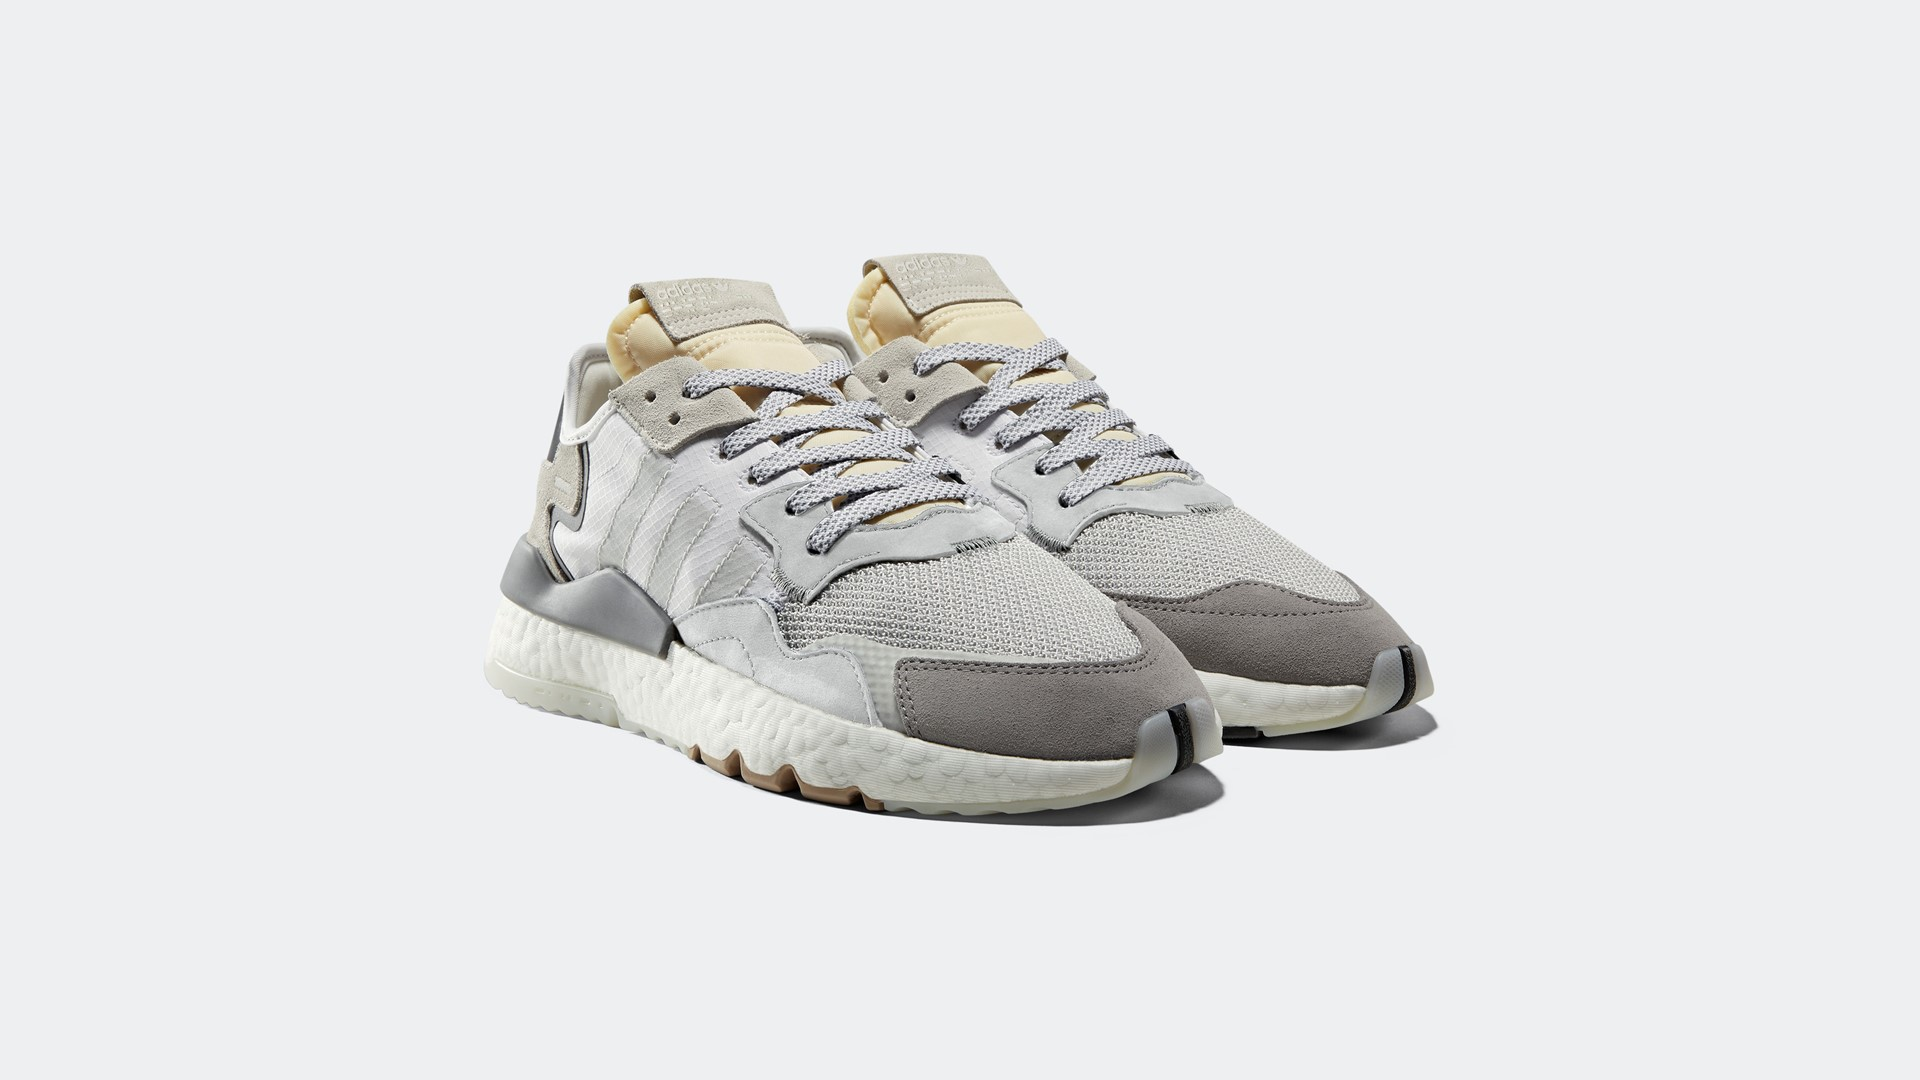 factory outlet get online super cheap adidas originals updates Nite Jogger silhouette for spring ...